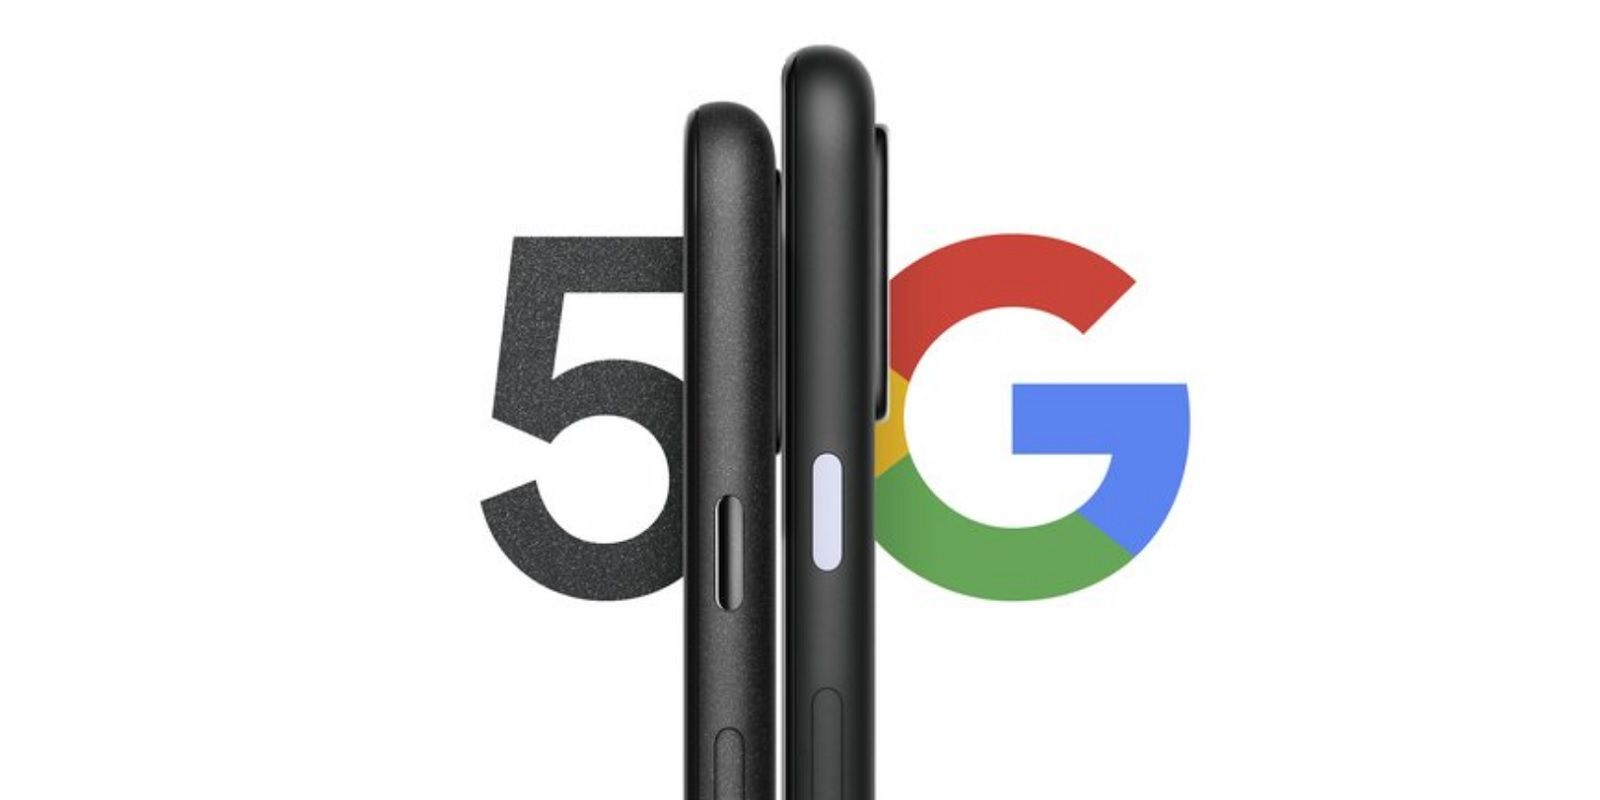 Google Confirms Pixel 5 & Pixel 4a 5G Phones Will Launch ...